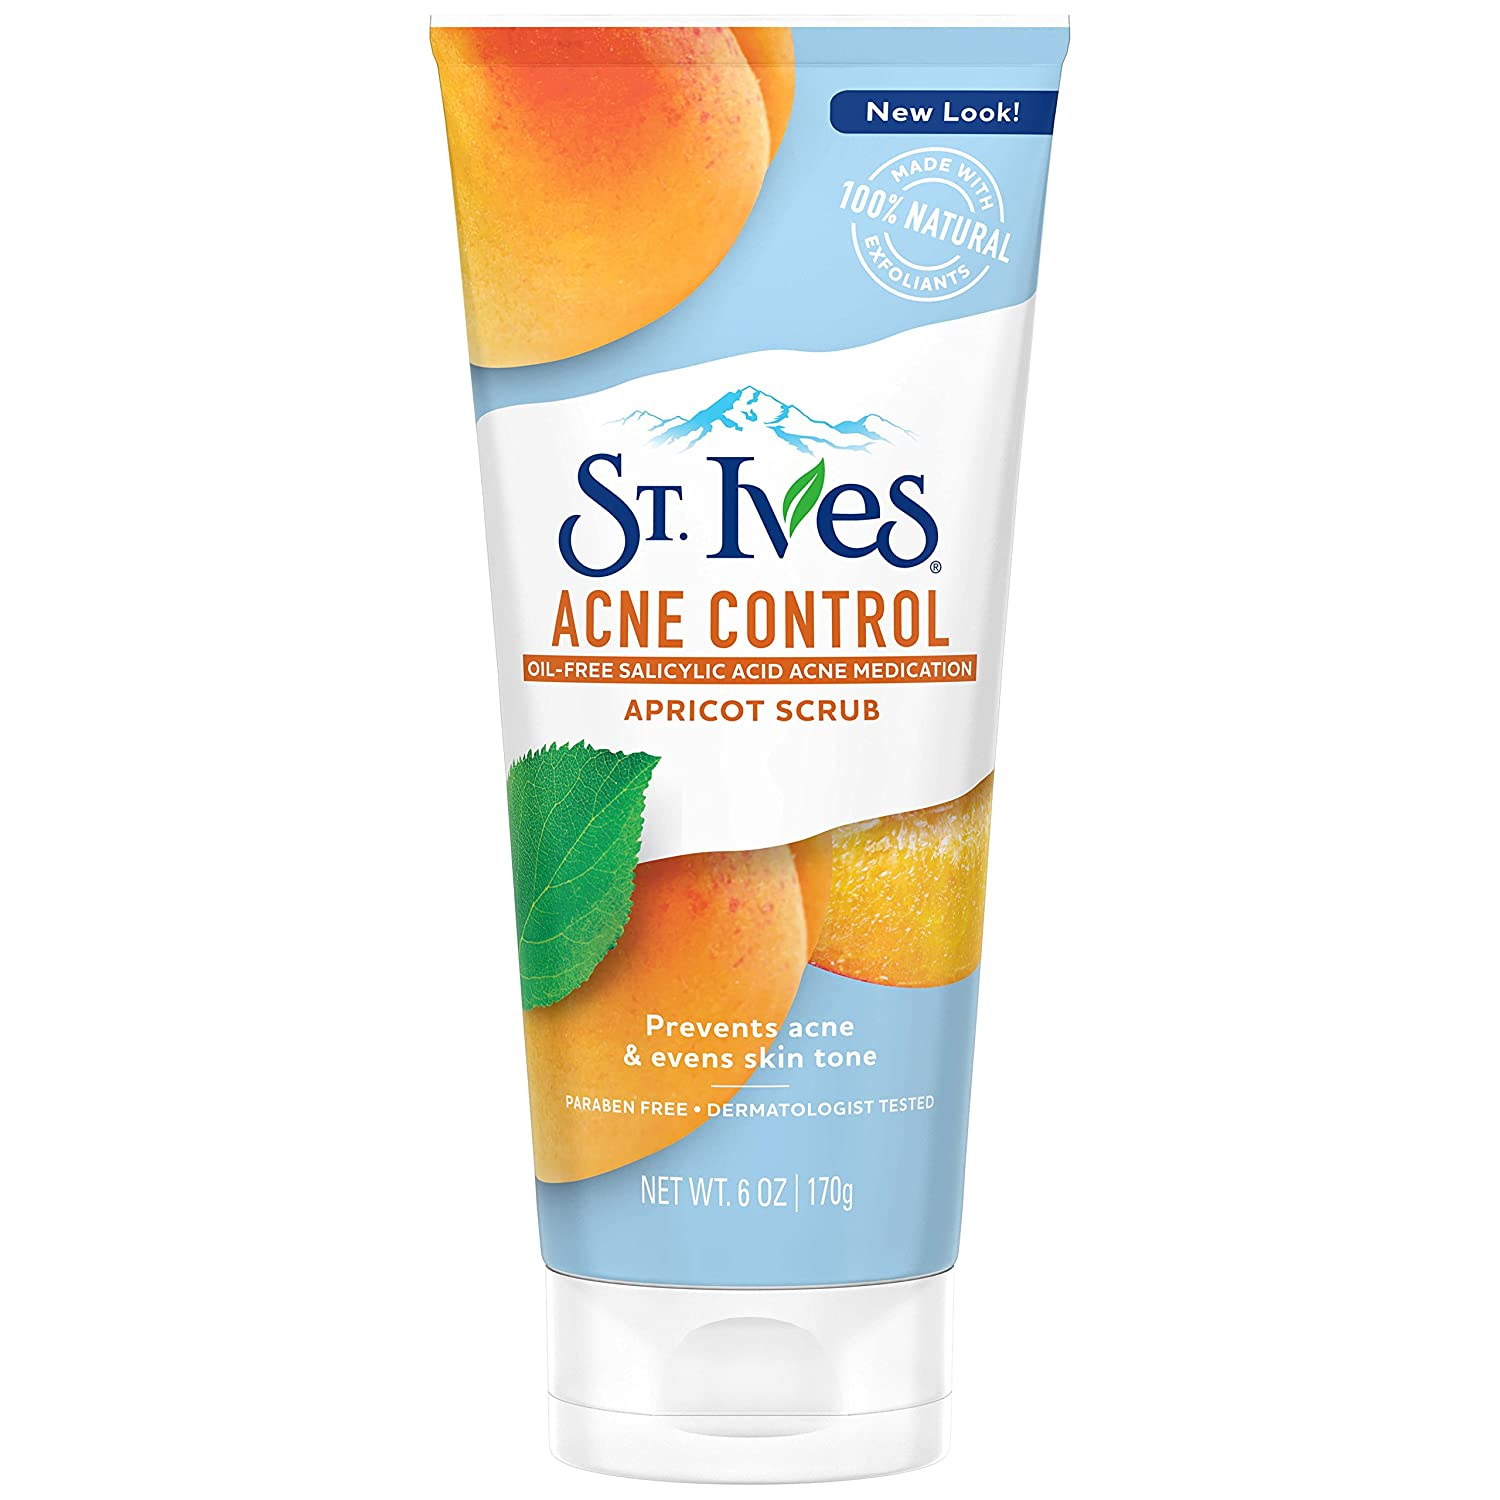 St. Ives Acne Control Face Scrub, Apricot, 6 oz (Pack of 6)